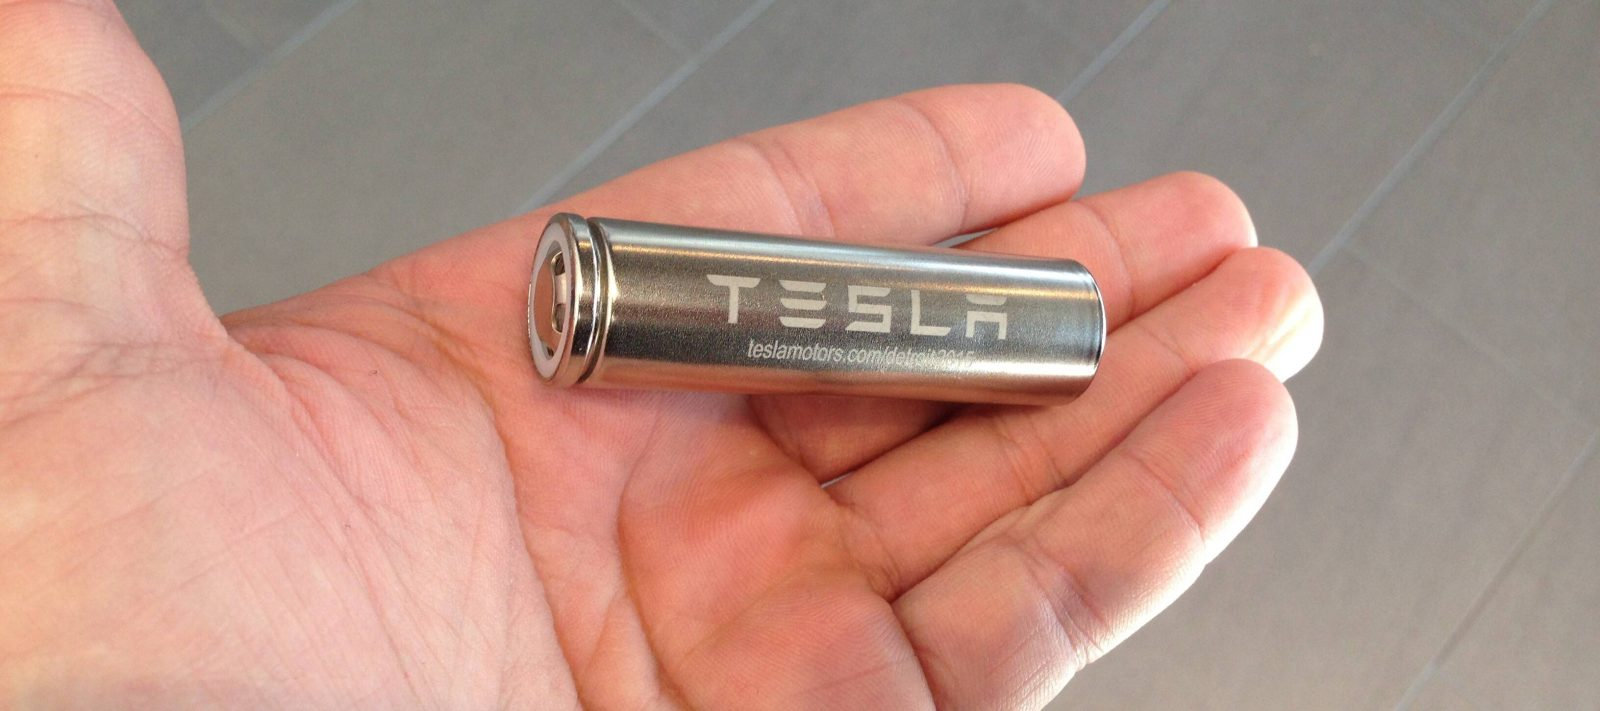 Tesla makes battery supply deal with LG for Chinese Gigafactory 3, report says